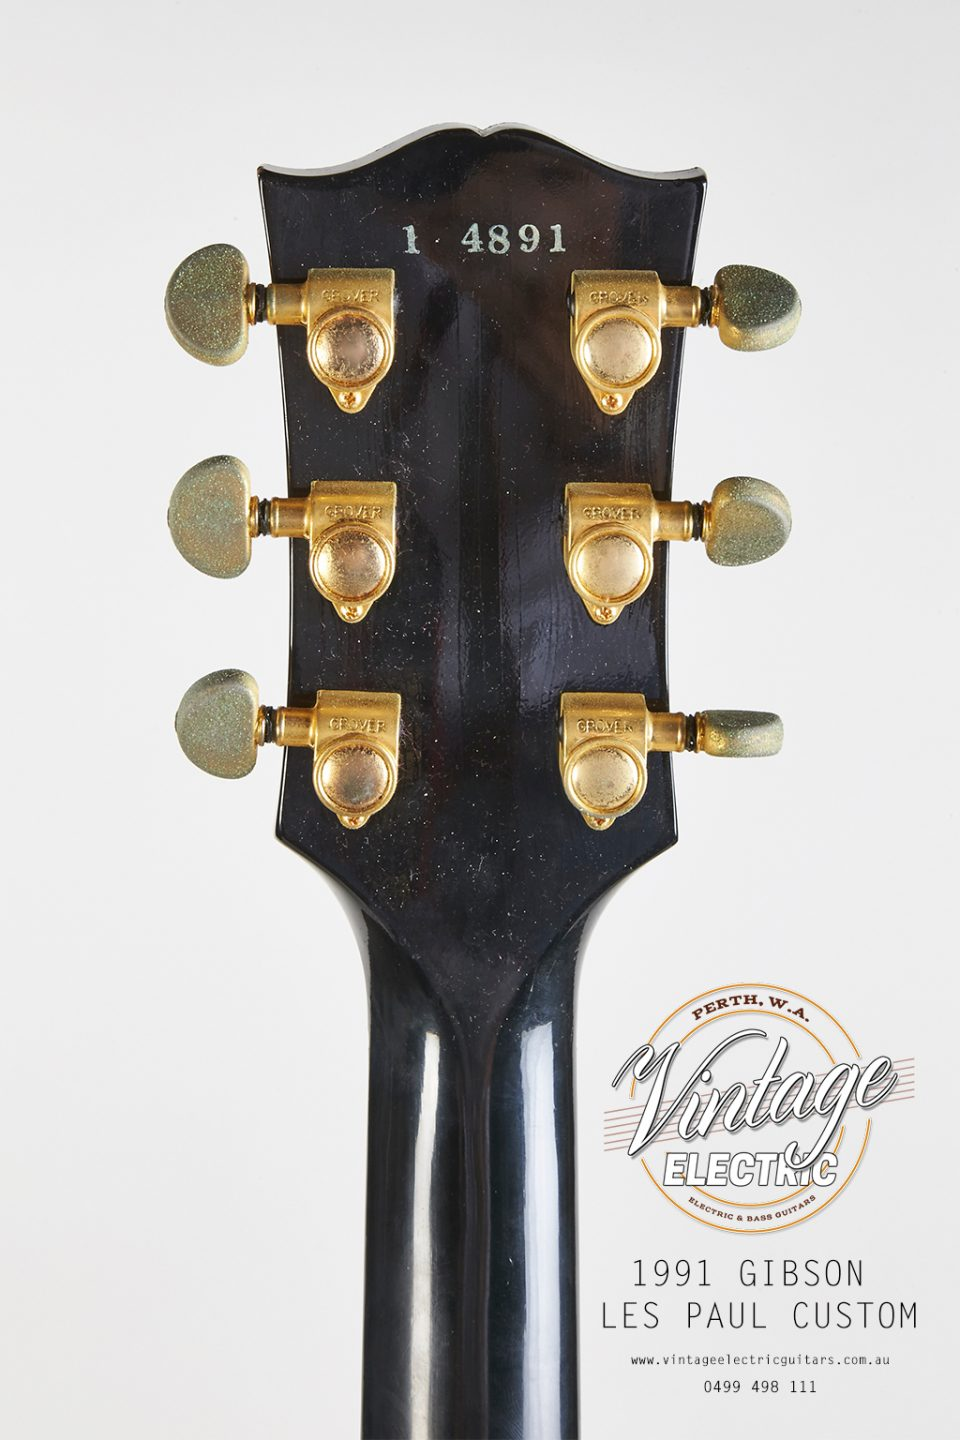 1991 Gibson Les Paul Custom Black Beauty Back of Headstock